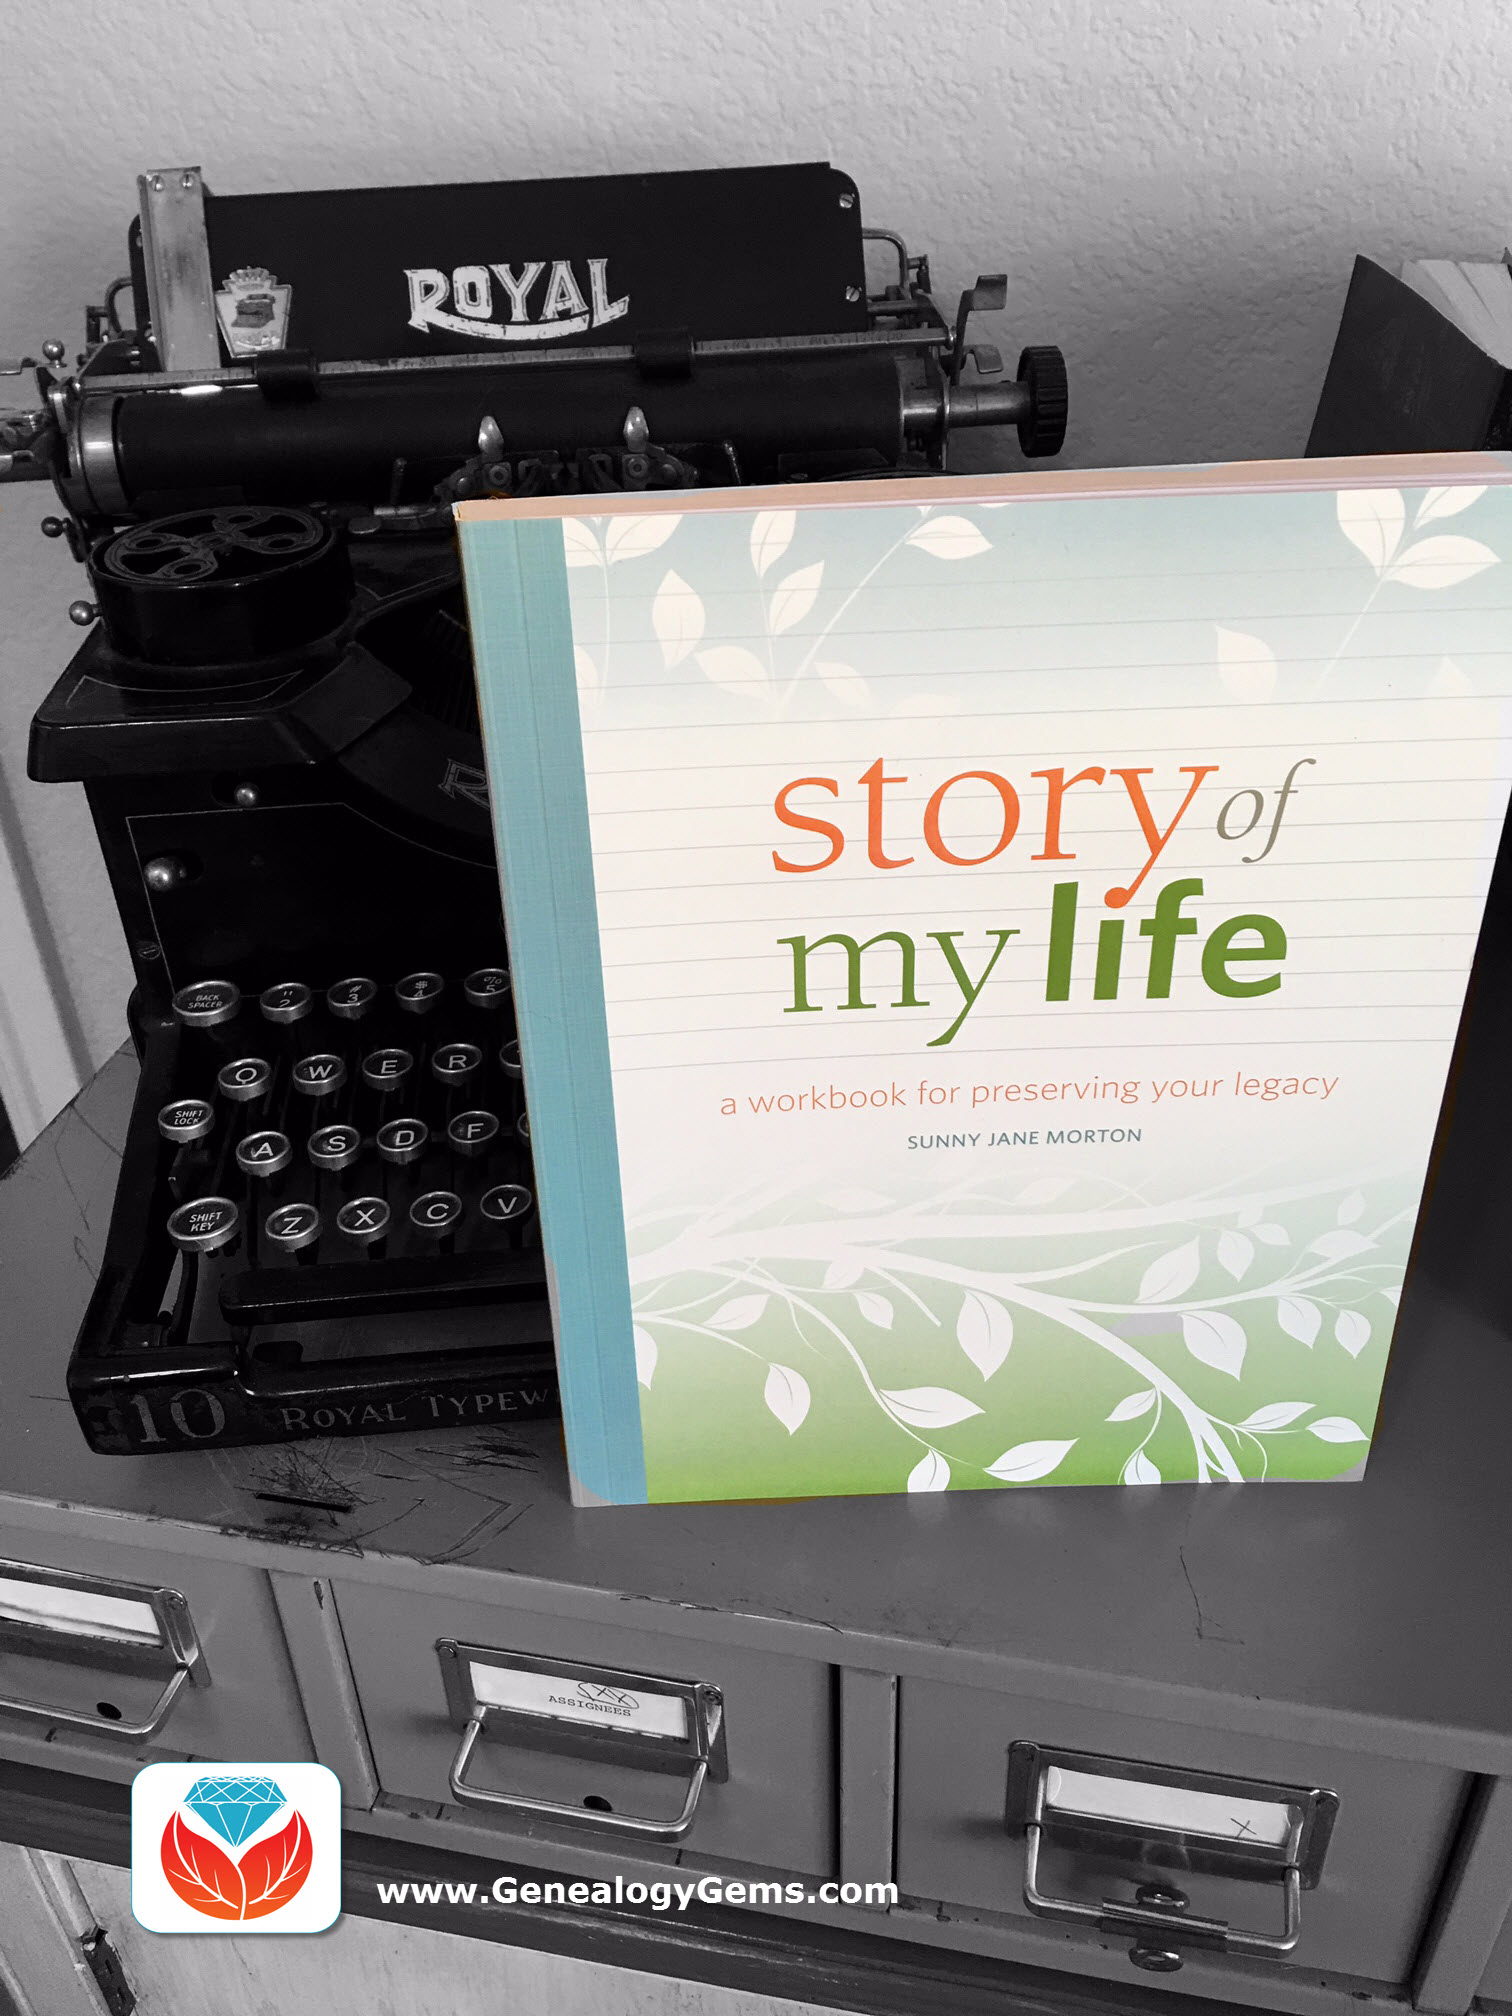 Story of my life workbook cover